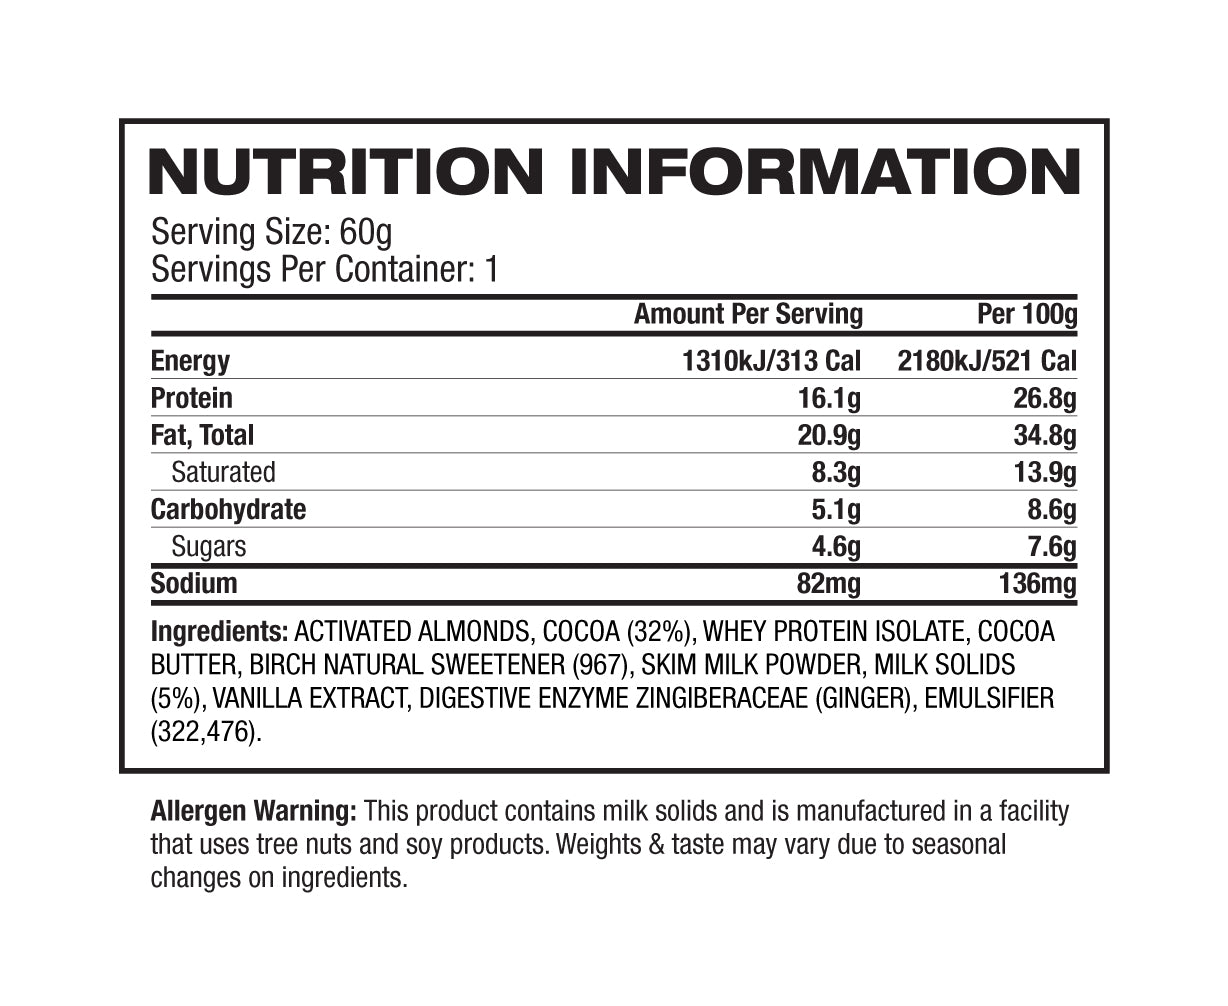 Nutrition Facts For Vitawerx Chocolate Coated Almonds